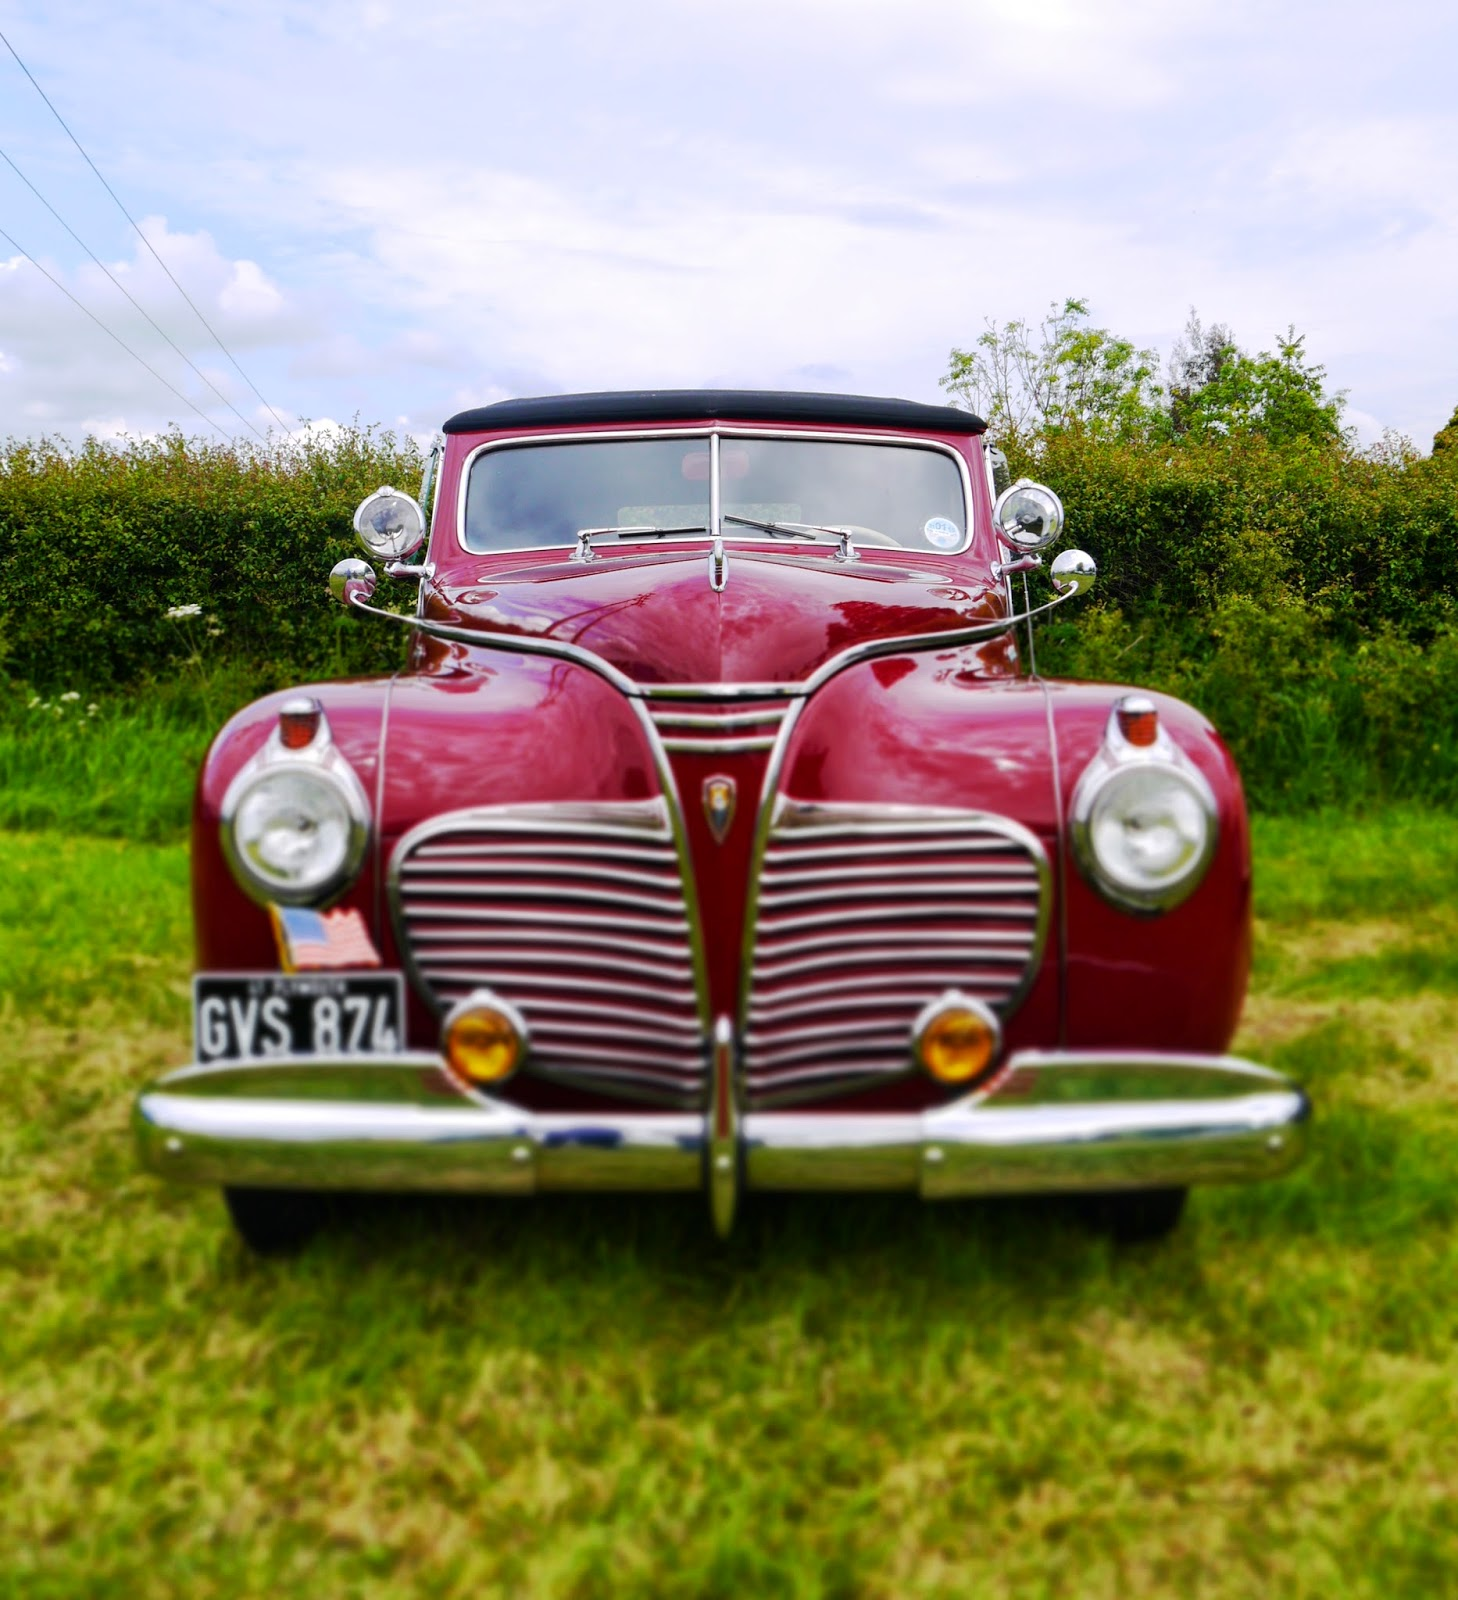 Vintage Cars at Selwood Steam Rally